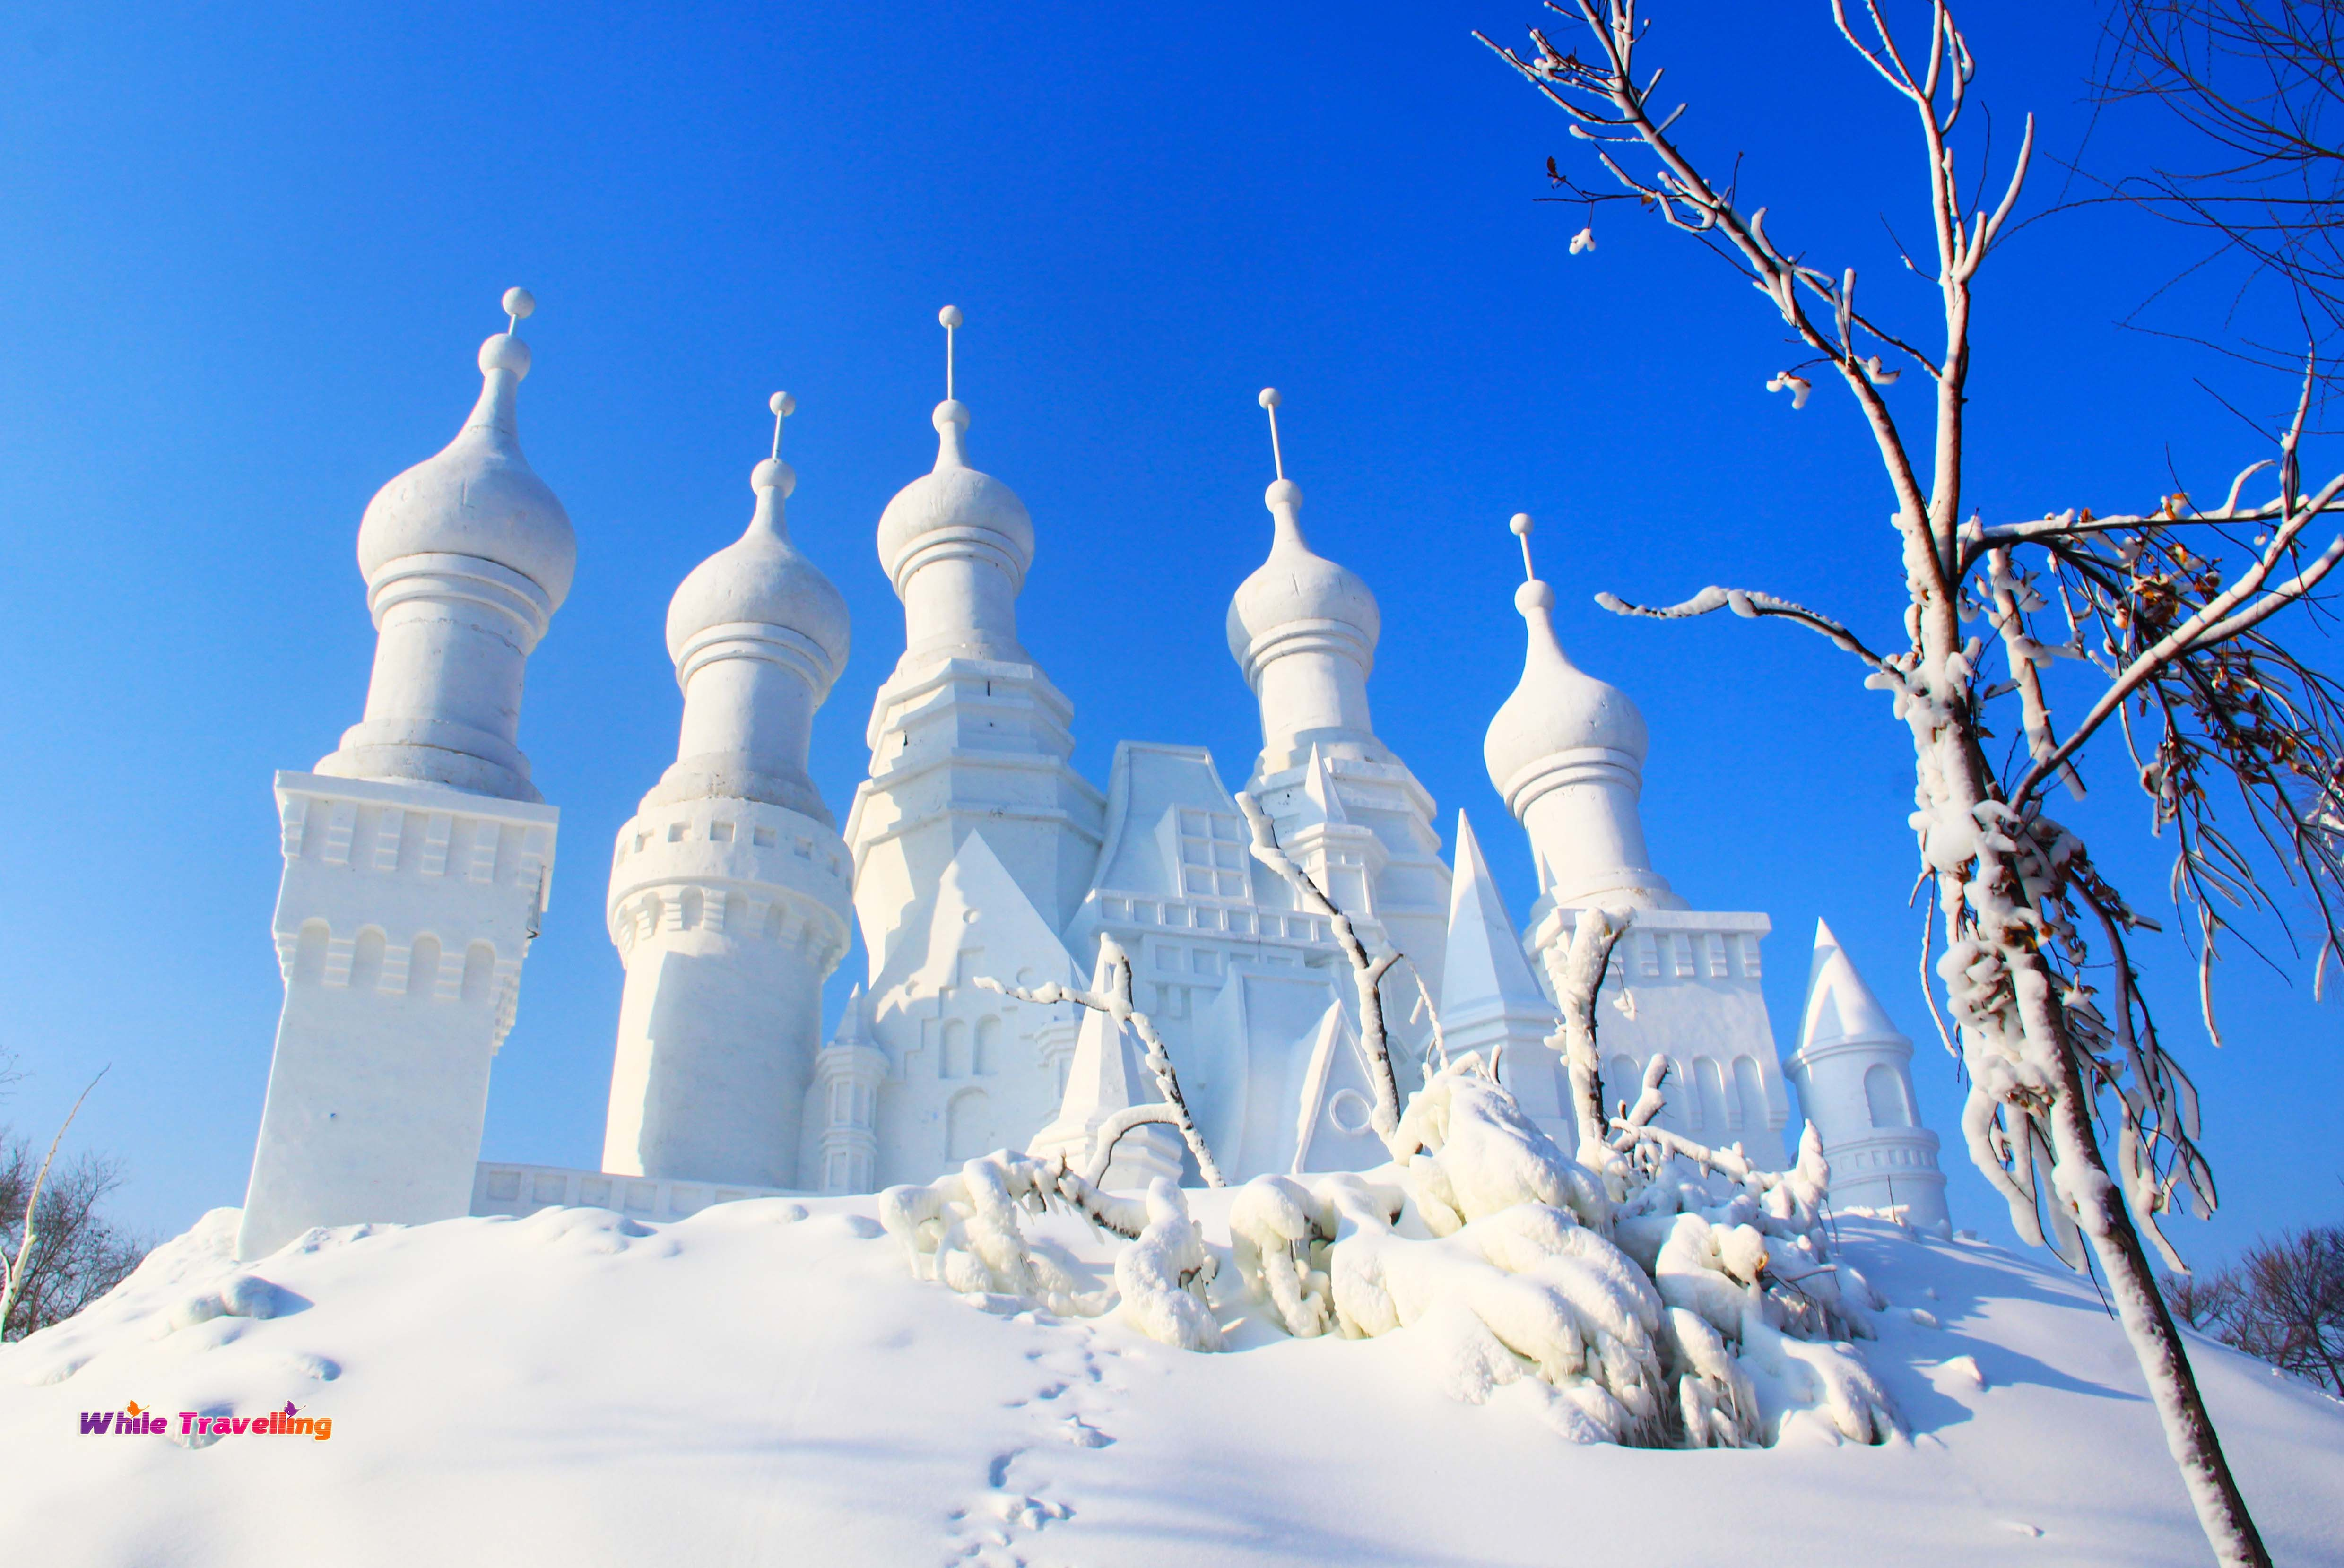 Survival Guide for Ice and Snow Festival in Harbin